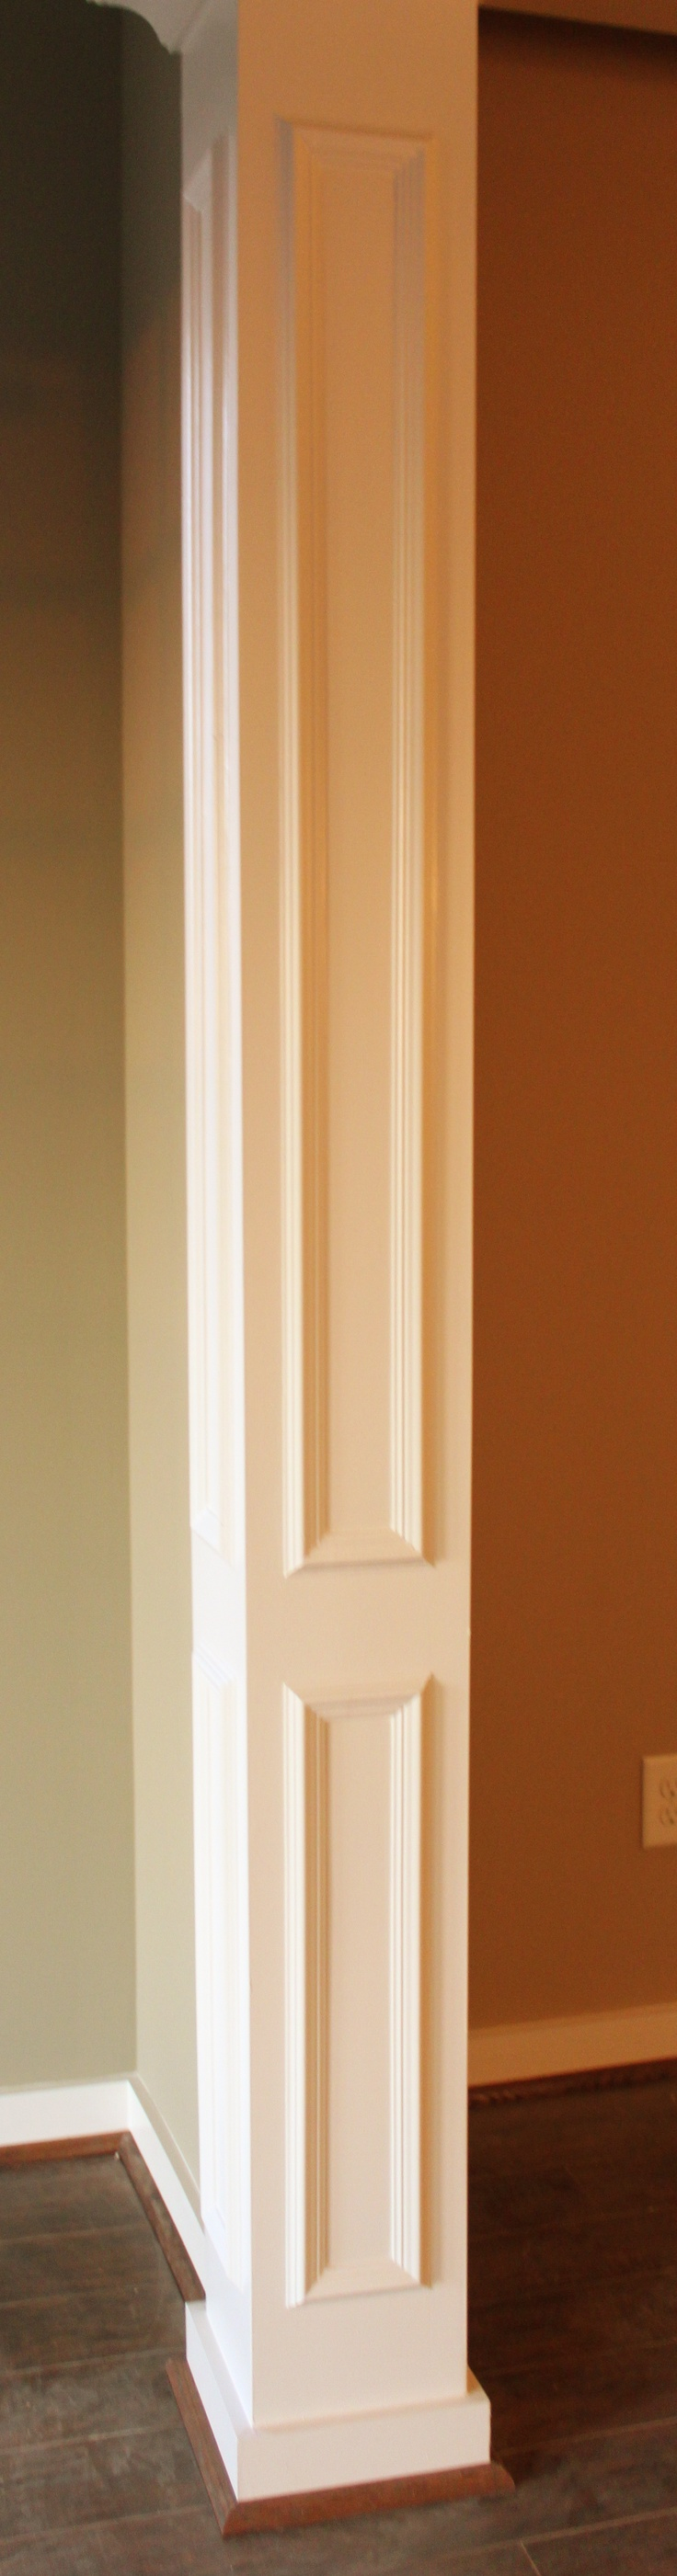 Column Molding Ideas 69 Best Molding Trim Ideas Images On Pinterest Molding Ideas